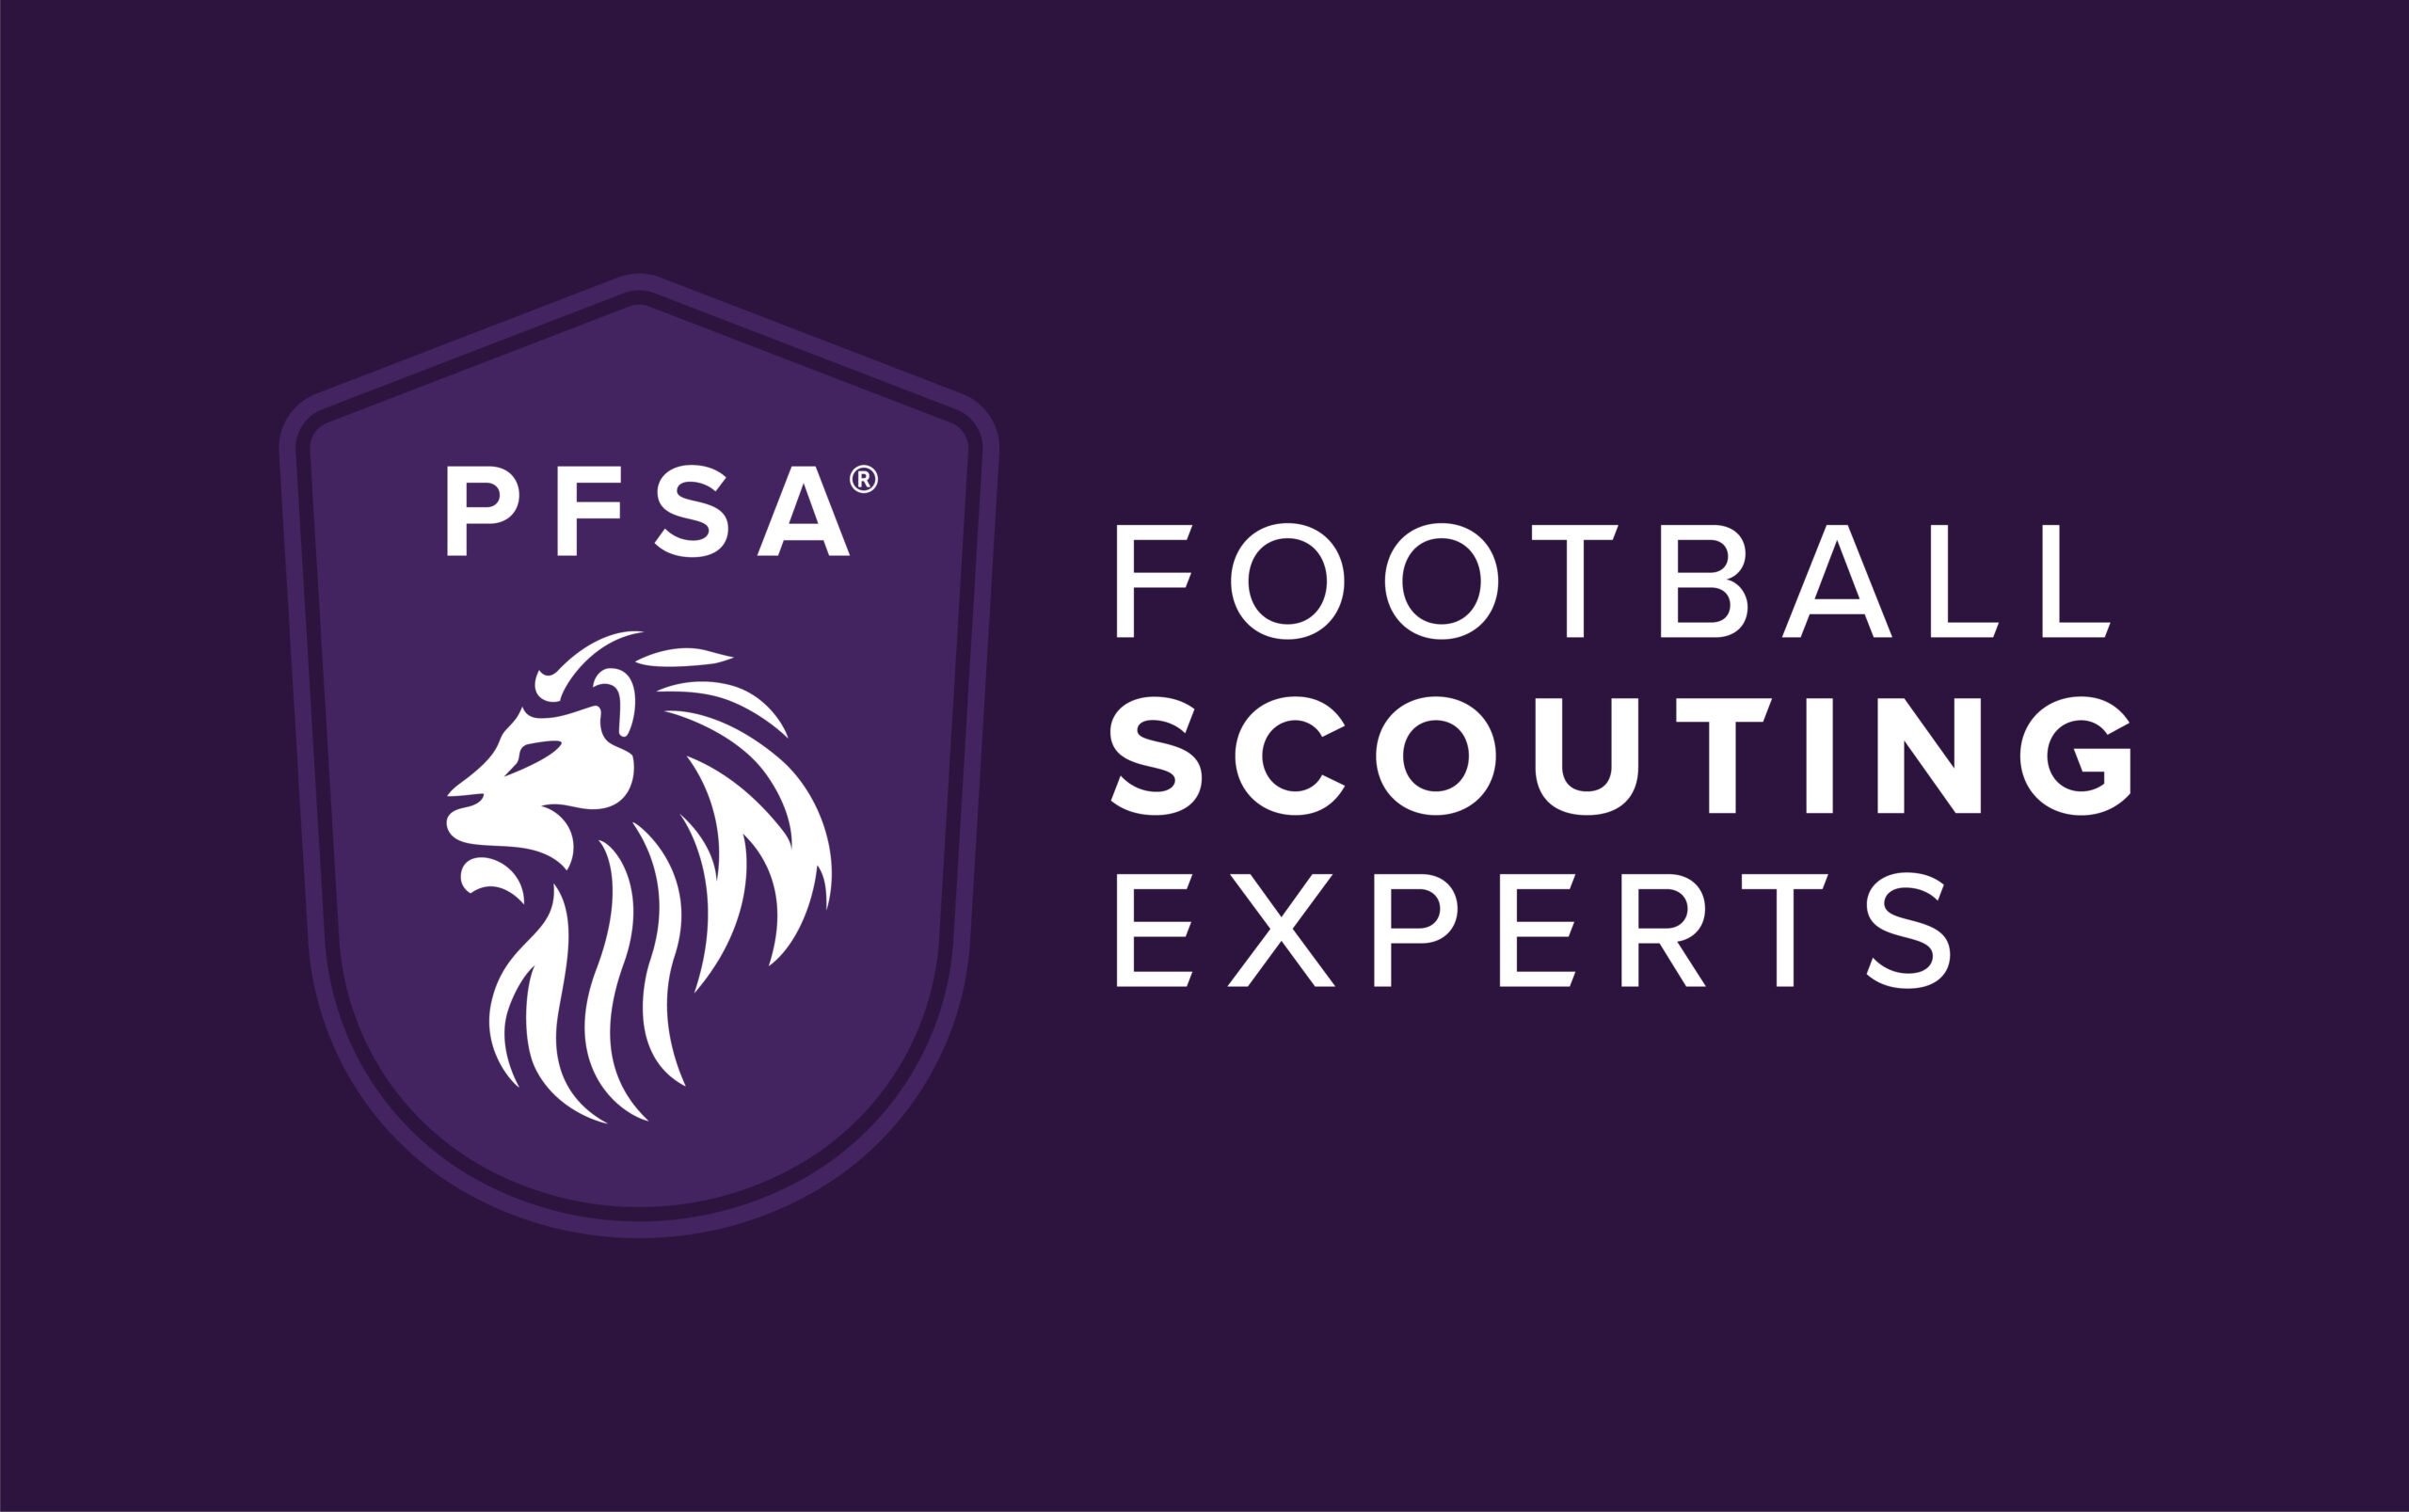 PFSA How to become a professional football scout